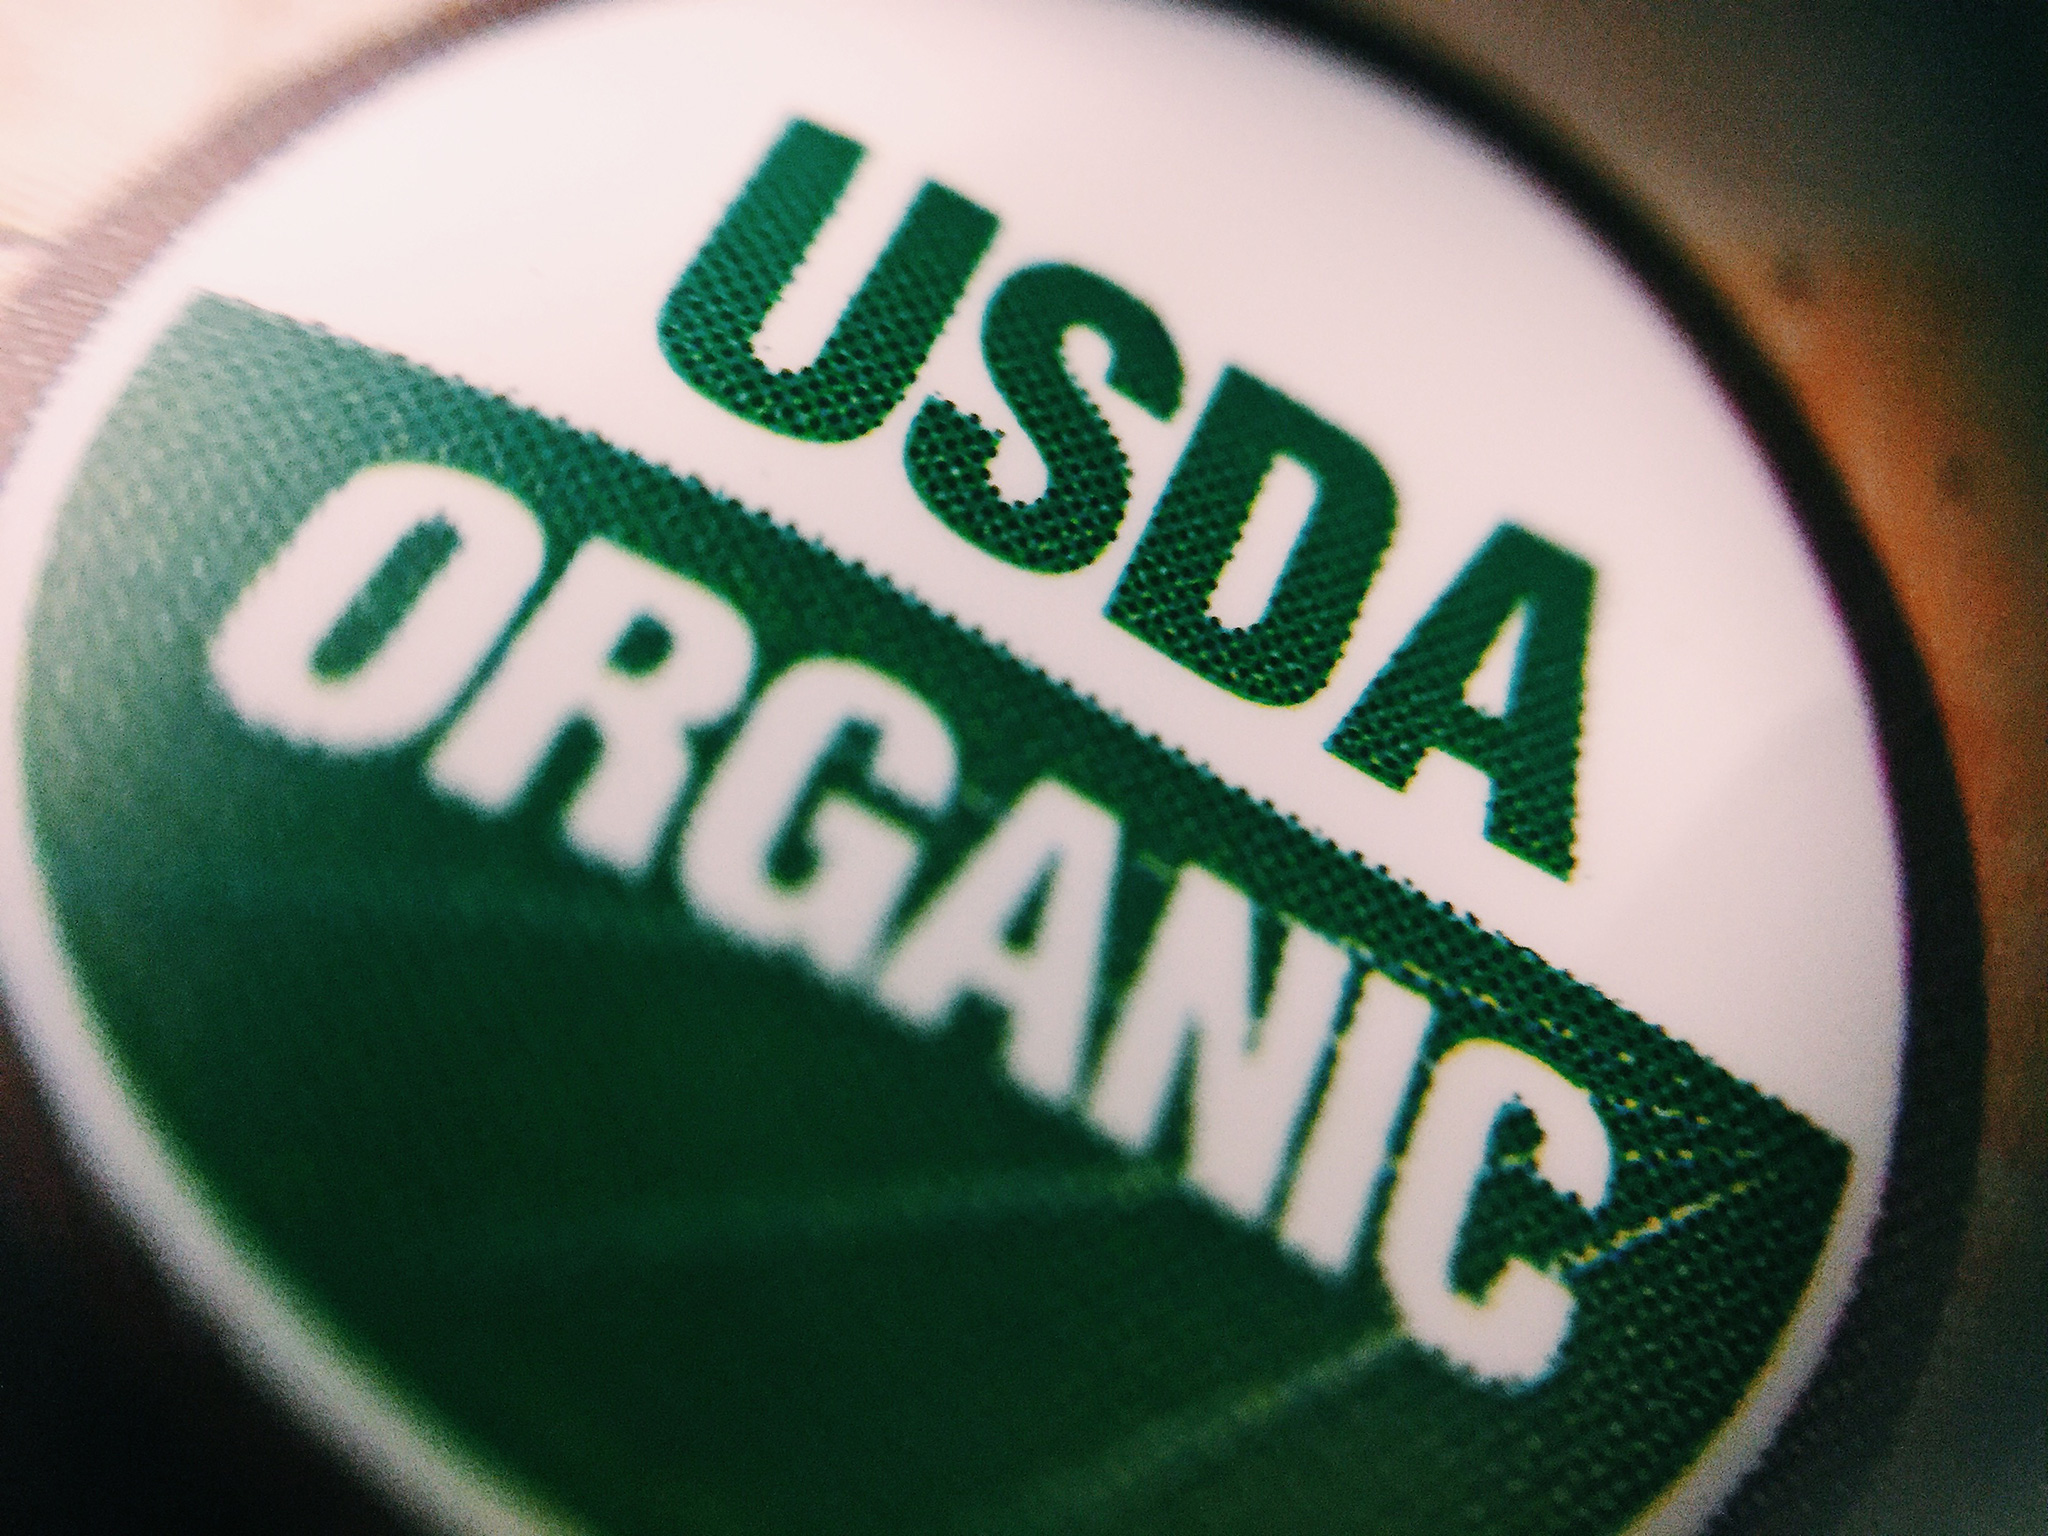 usda-organic-food-label